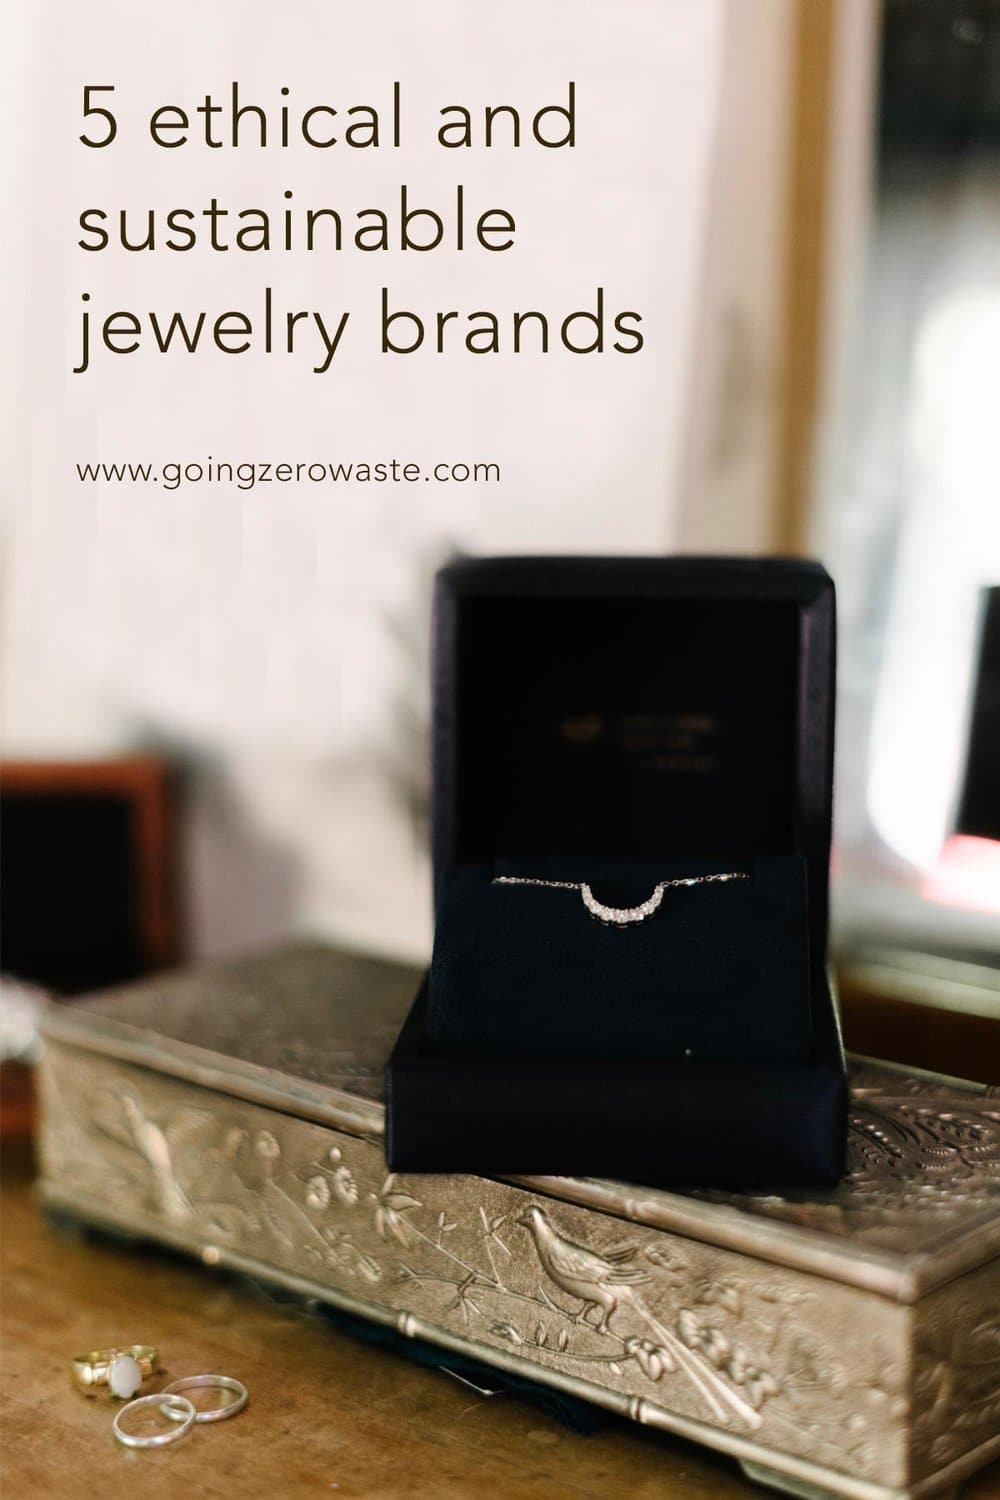 5 ethical and sustainable jewelry brands from www.goingzerowaste.com #ethical #sustainable #jewelry #ecofriendly #labgrowndiamonds